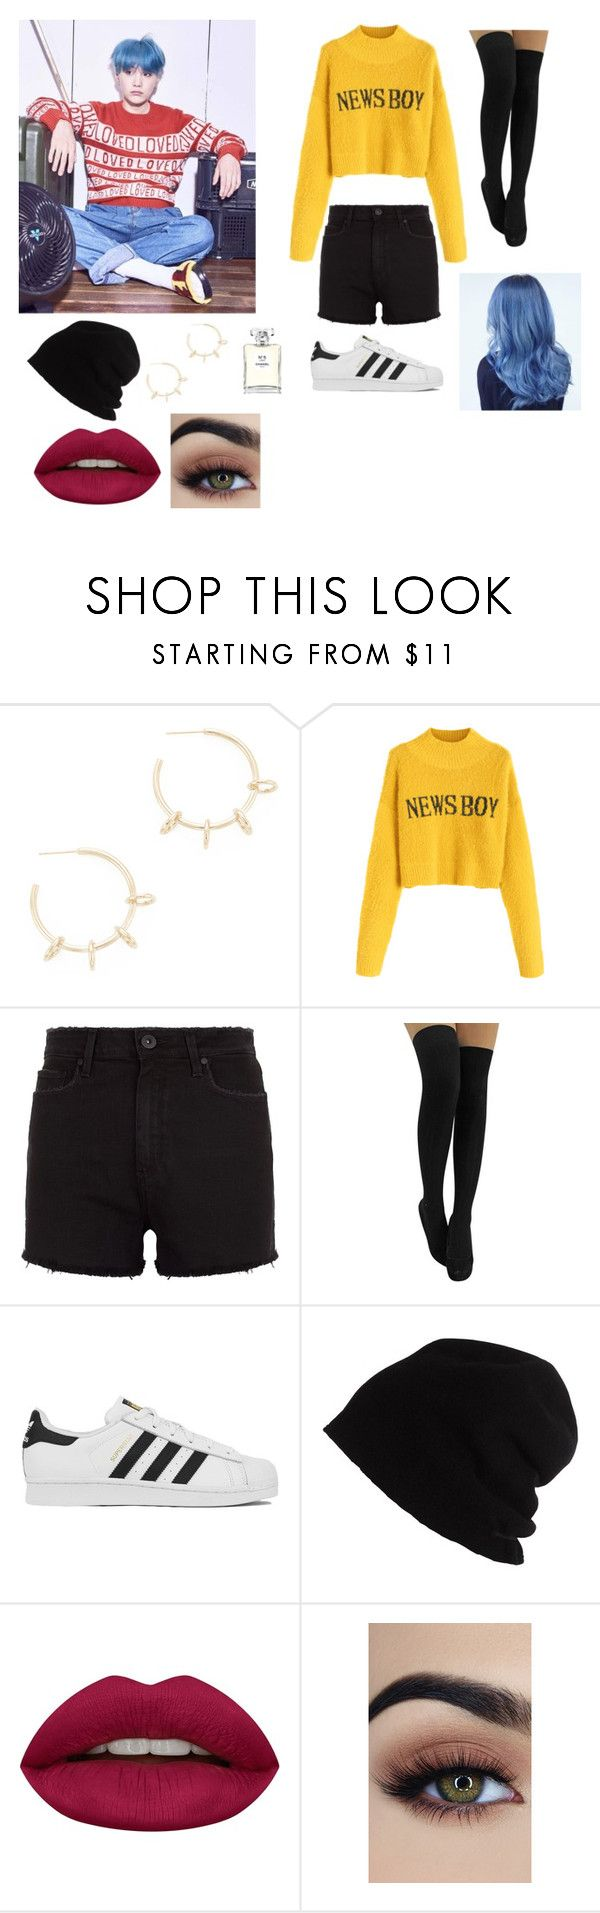 """""""Casual hangout with Suga"""" by gabby-galindo-97 ❤ liked on Polyvore featuring Justine Clenquet, Paige Denim, adidas, SCHA, Huda Beauty and Chanel"""